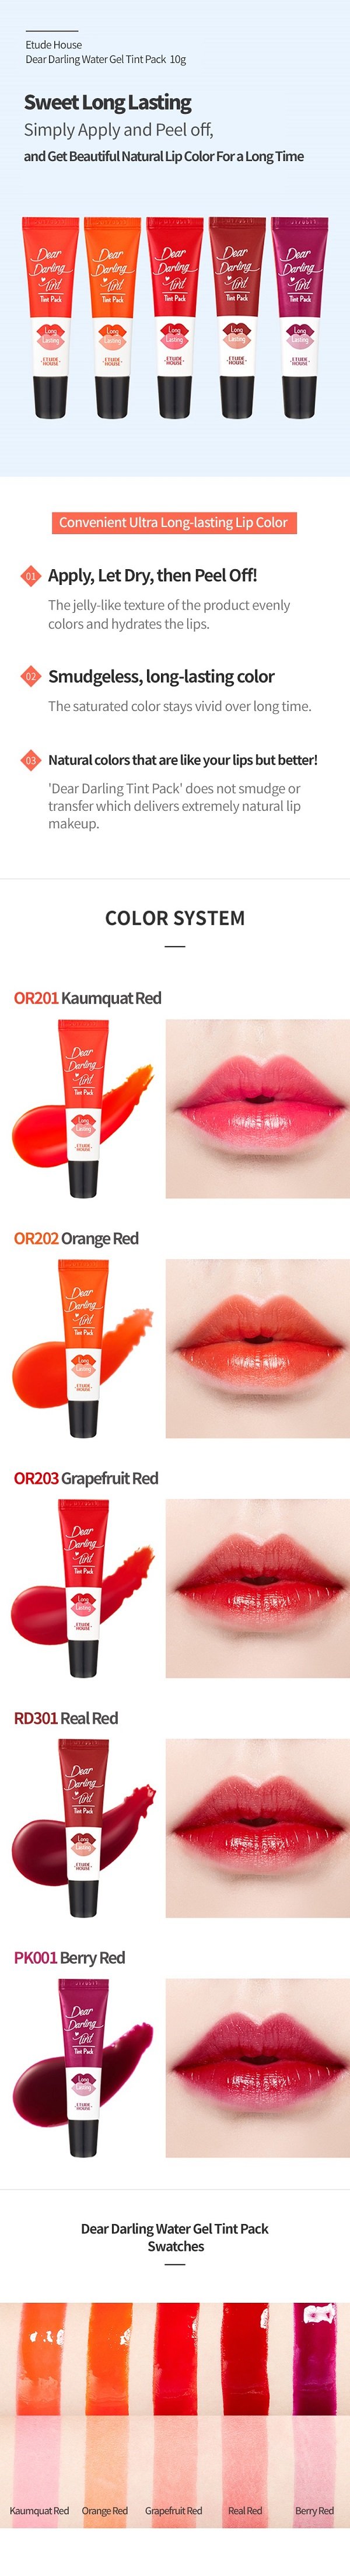 Etude House Dear Darling Water Gel Tint Pack 10g malaysia singapore indonesia